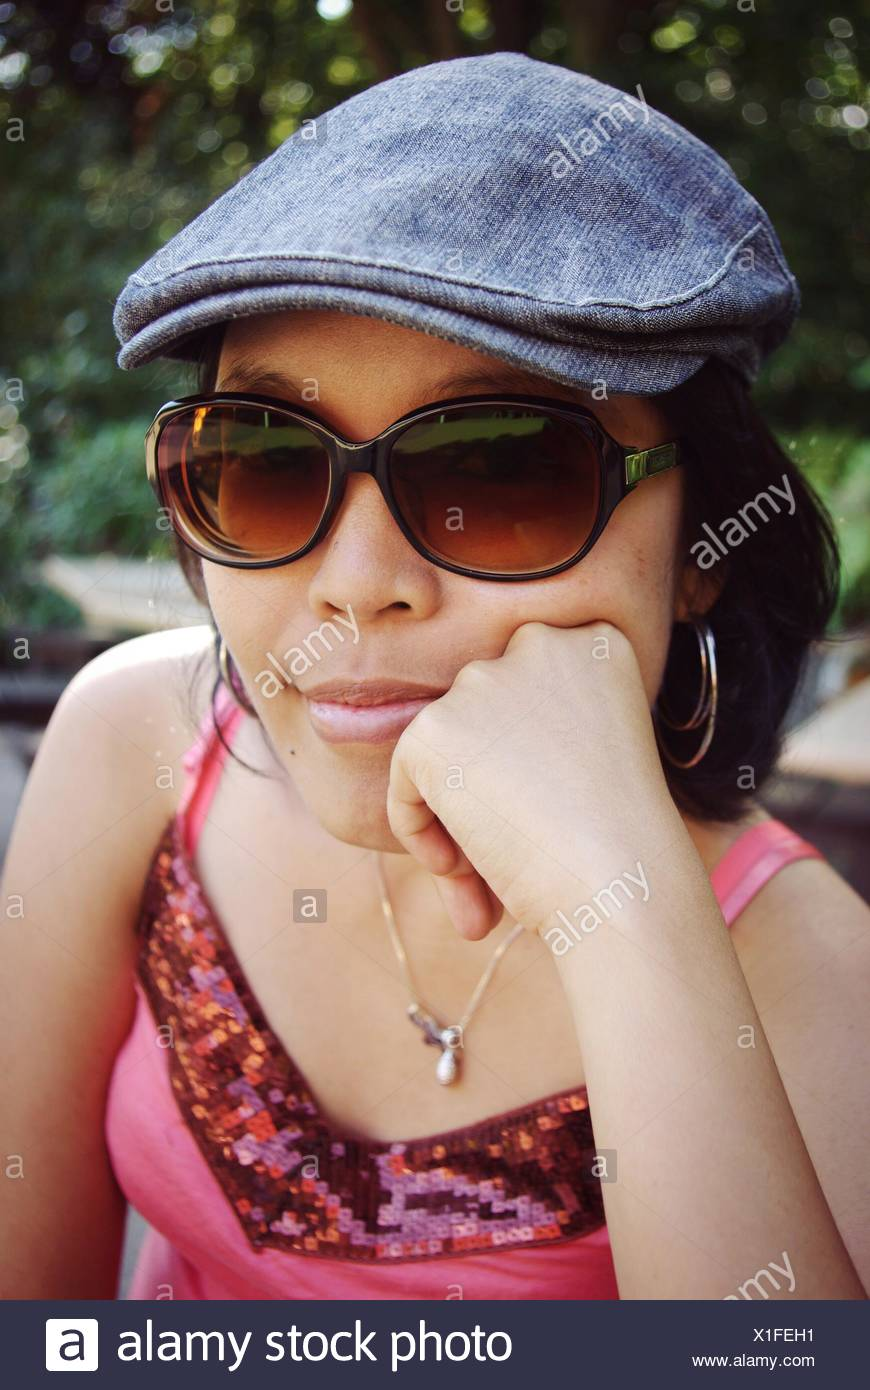 caa75c19820cc Close-Up Portrait Of Young Woman Wearing Sunglasses Sitting In Park ...